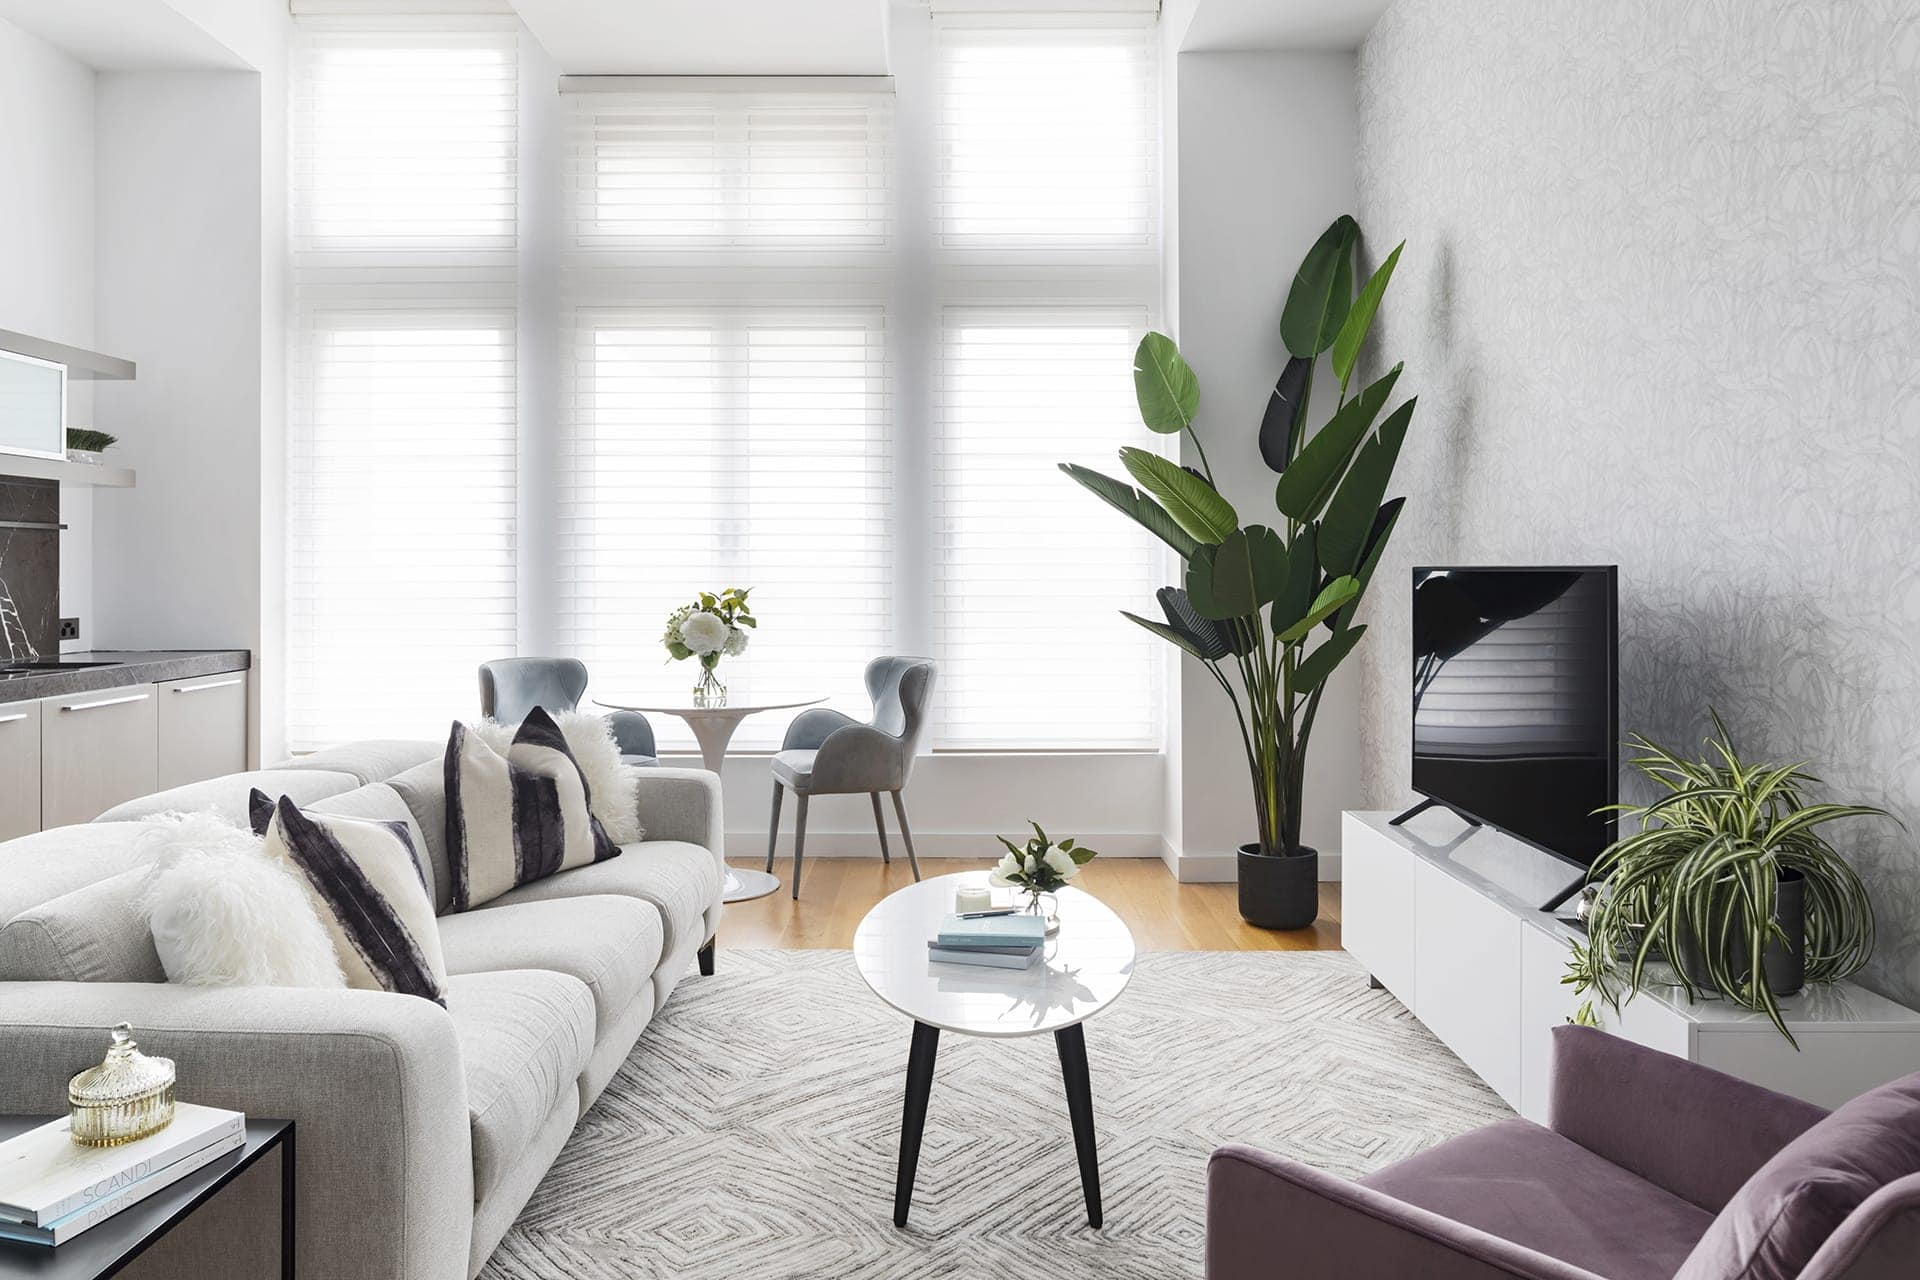 Melbourne apartment make over with grey recliner sofa from Plush and blinds from Luxaflex